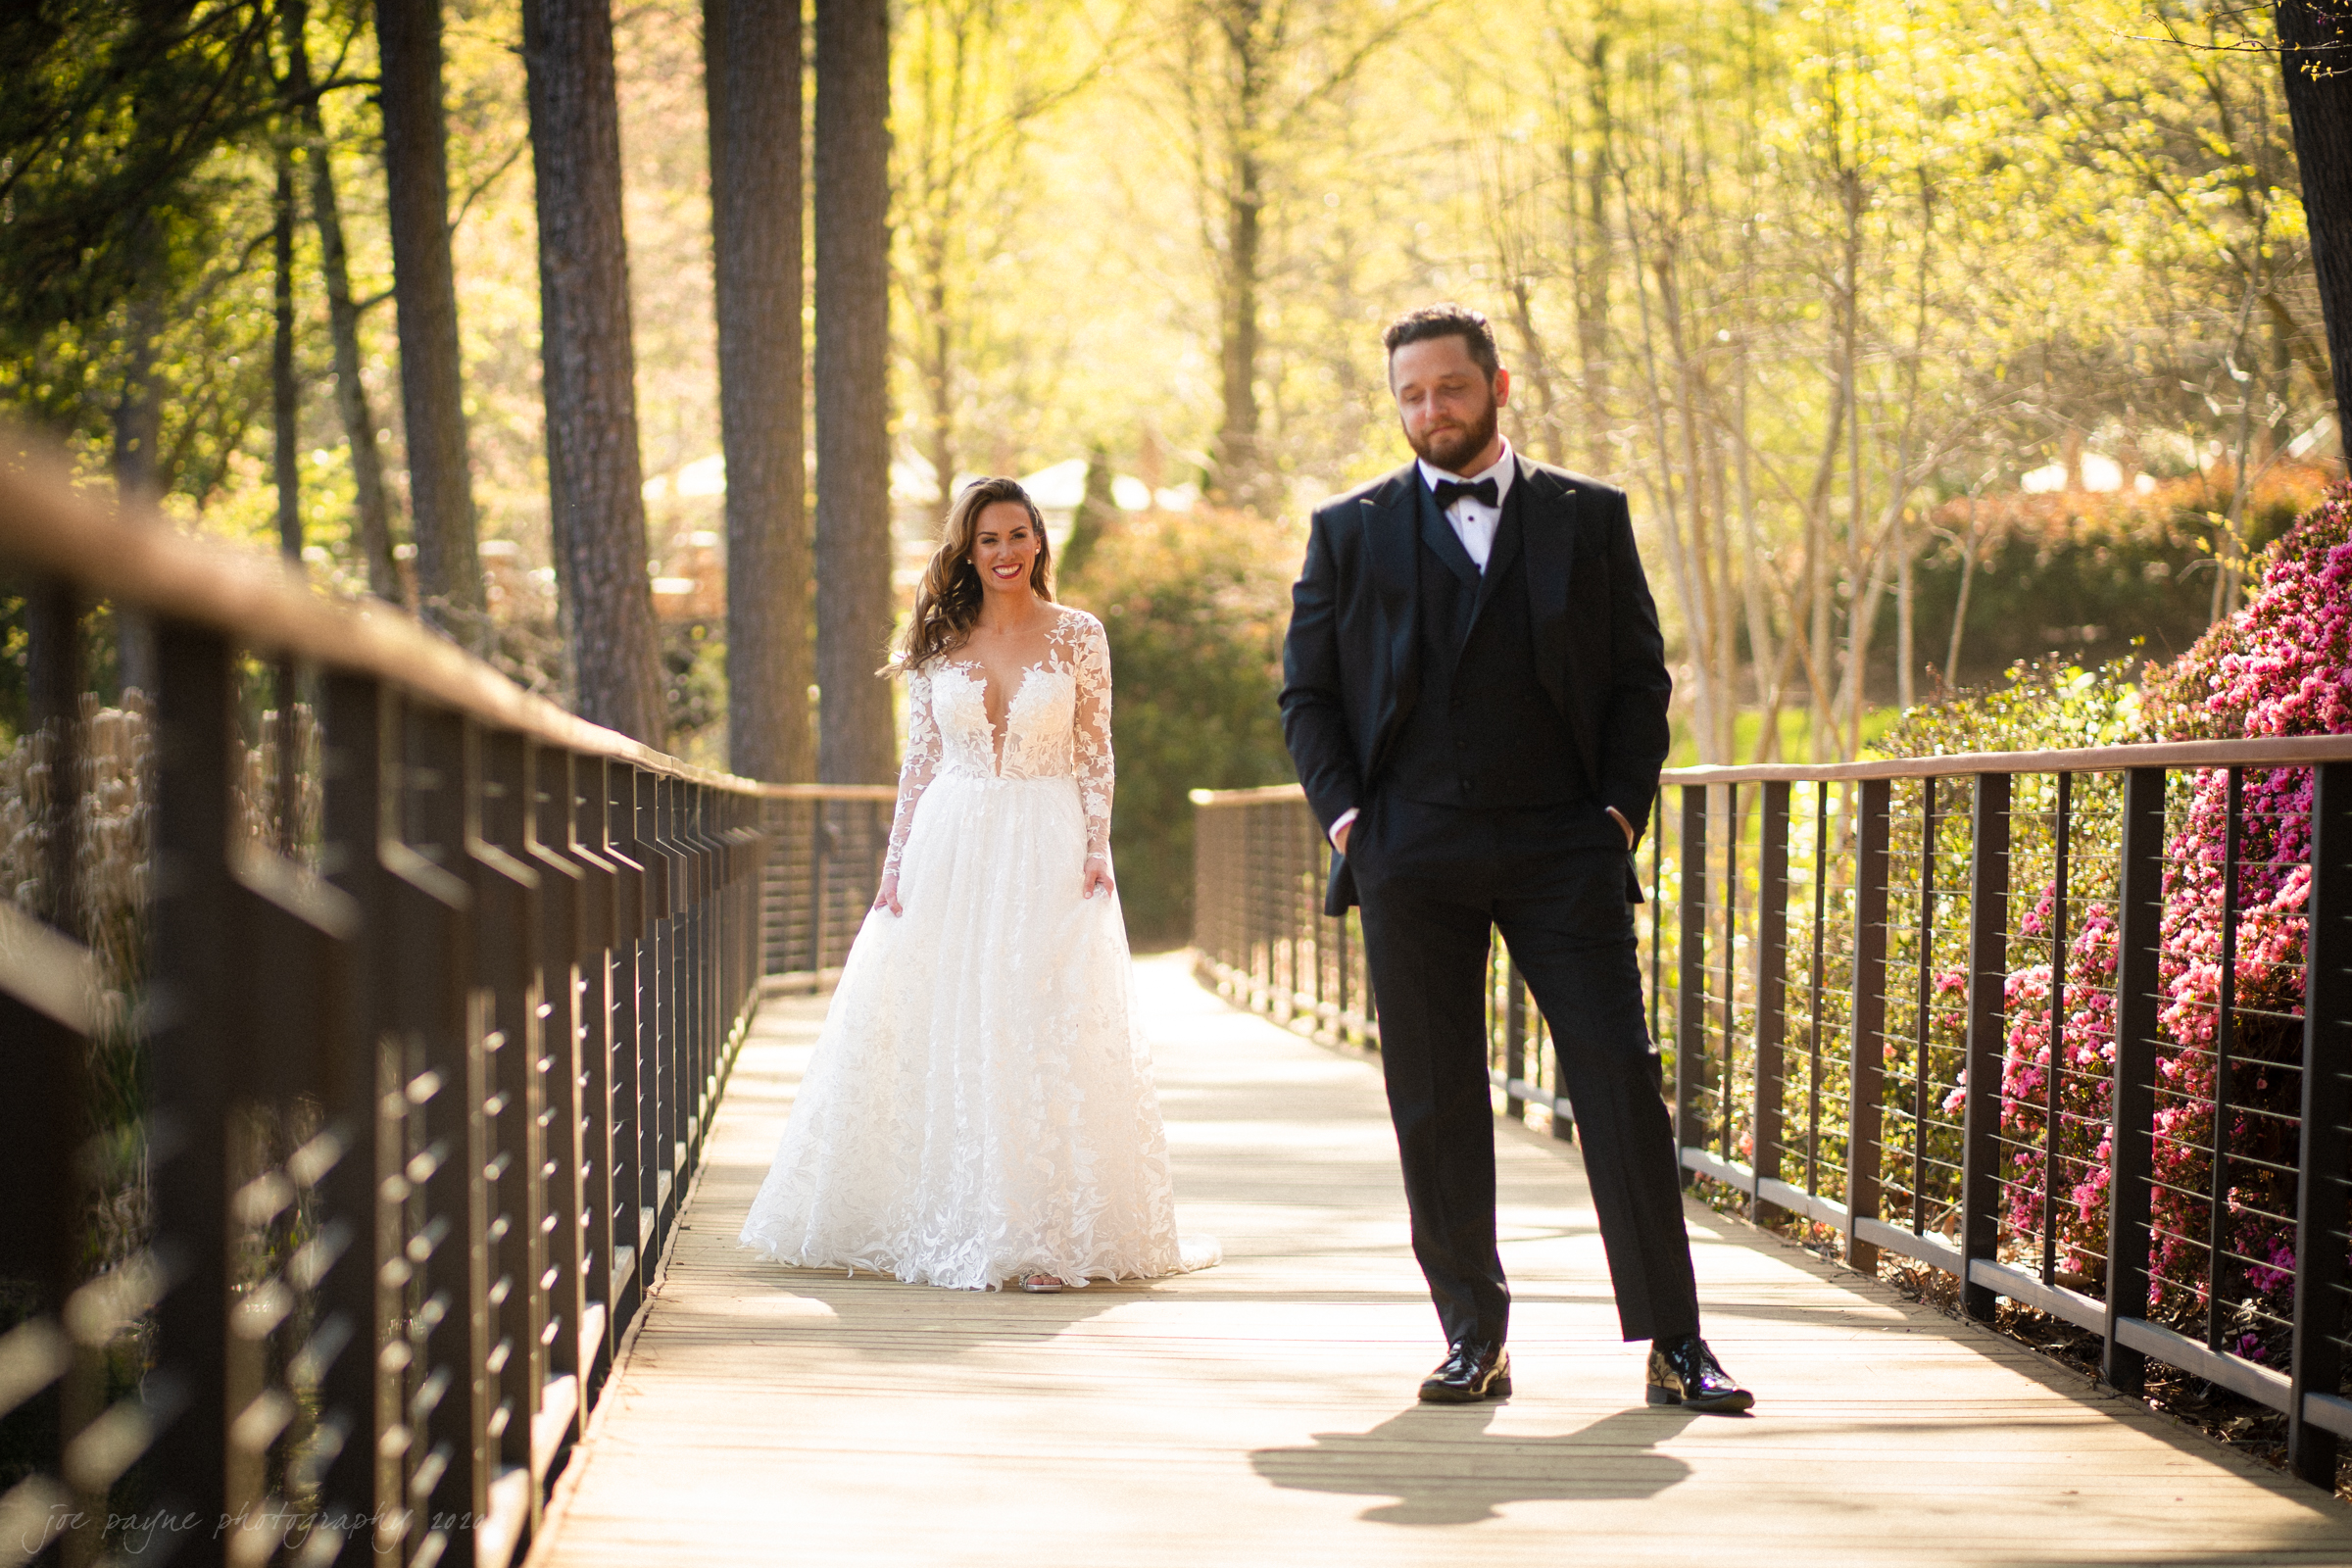 umstead hotel park wedding photography brittany harrison 9